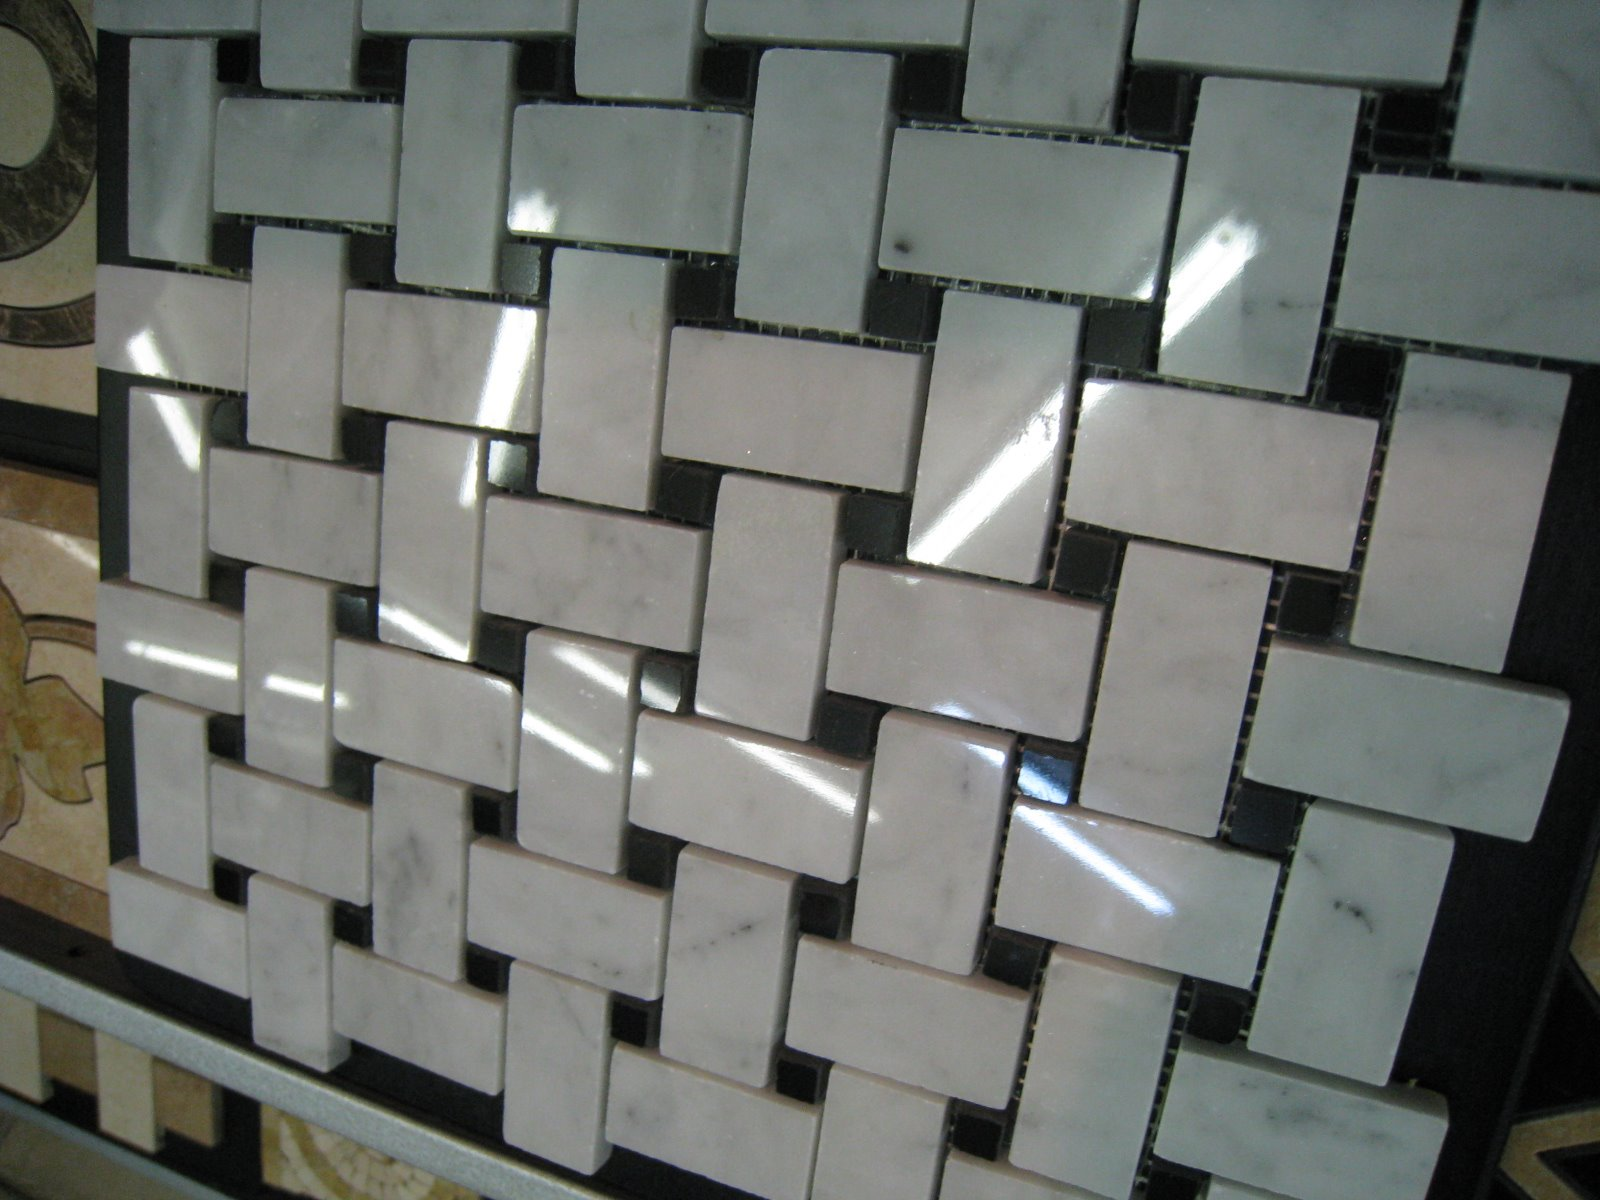 Tile file marble mosaic the devil is in the detail for Carrara marble per square foot